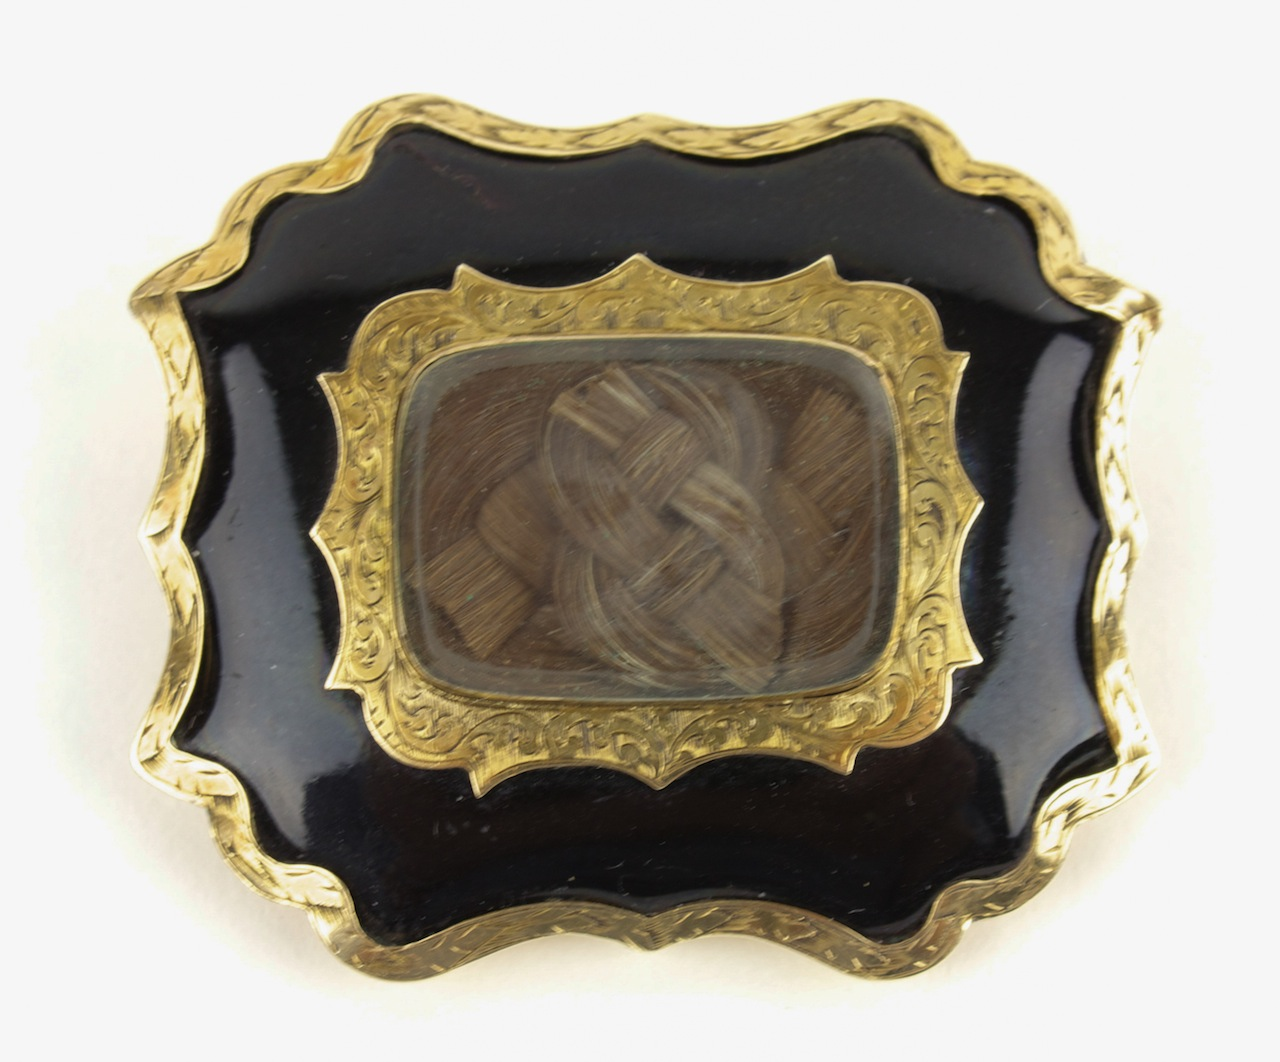 """Maker unknown, """"Mourning Brooch in Memory of Stephen Gore with a Lock of his Hair and the Inscription on the Verso, 'Stephen Gore/Born/Apl 29th 1790/Obt/Sept 16 1845′"""" (c. 1845), gold, steel clasp, glass and hair, Collection of Janet Hasson"""